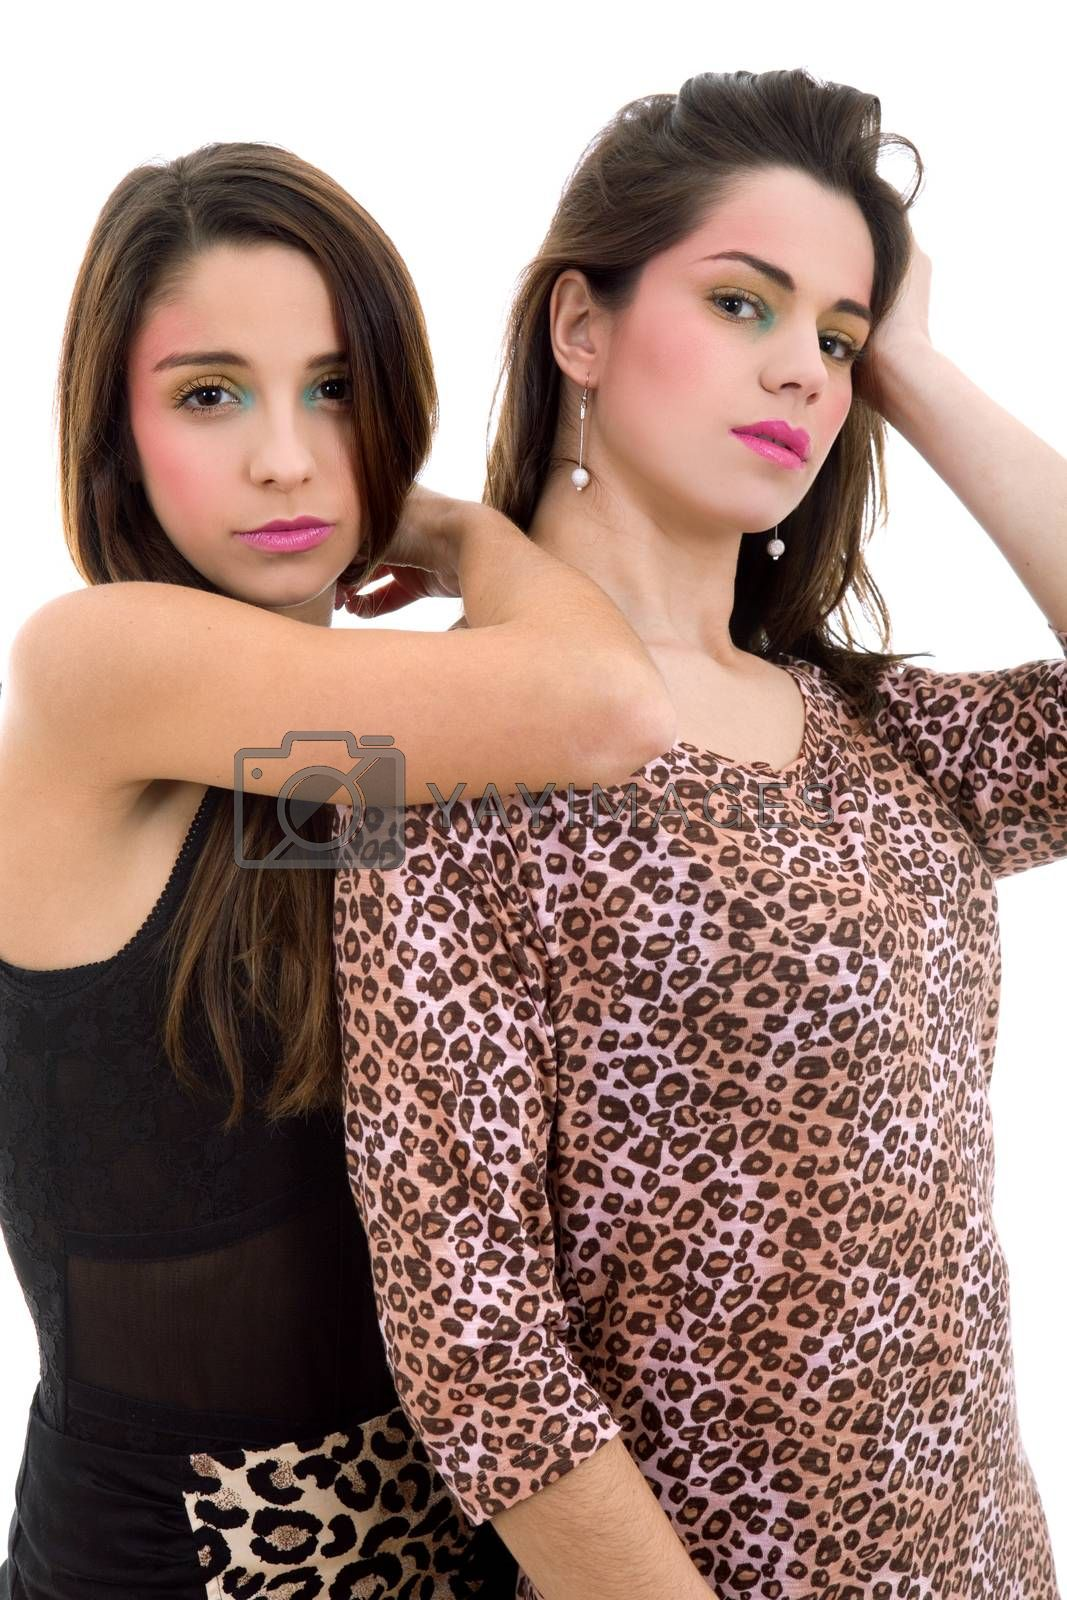 Royalty free image of young girls by zittto